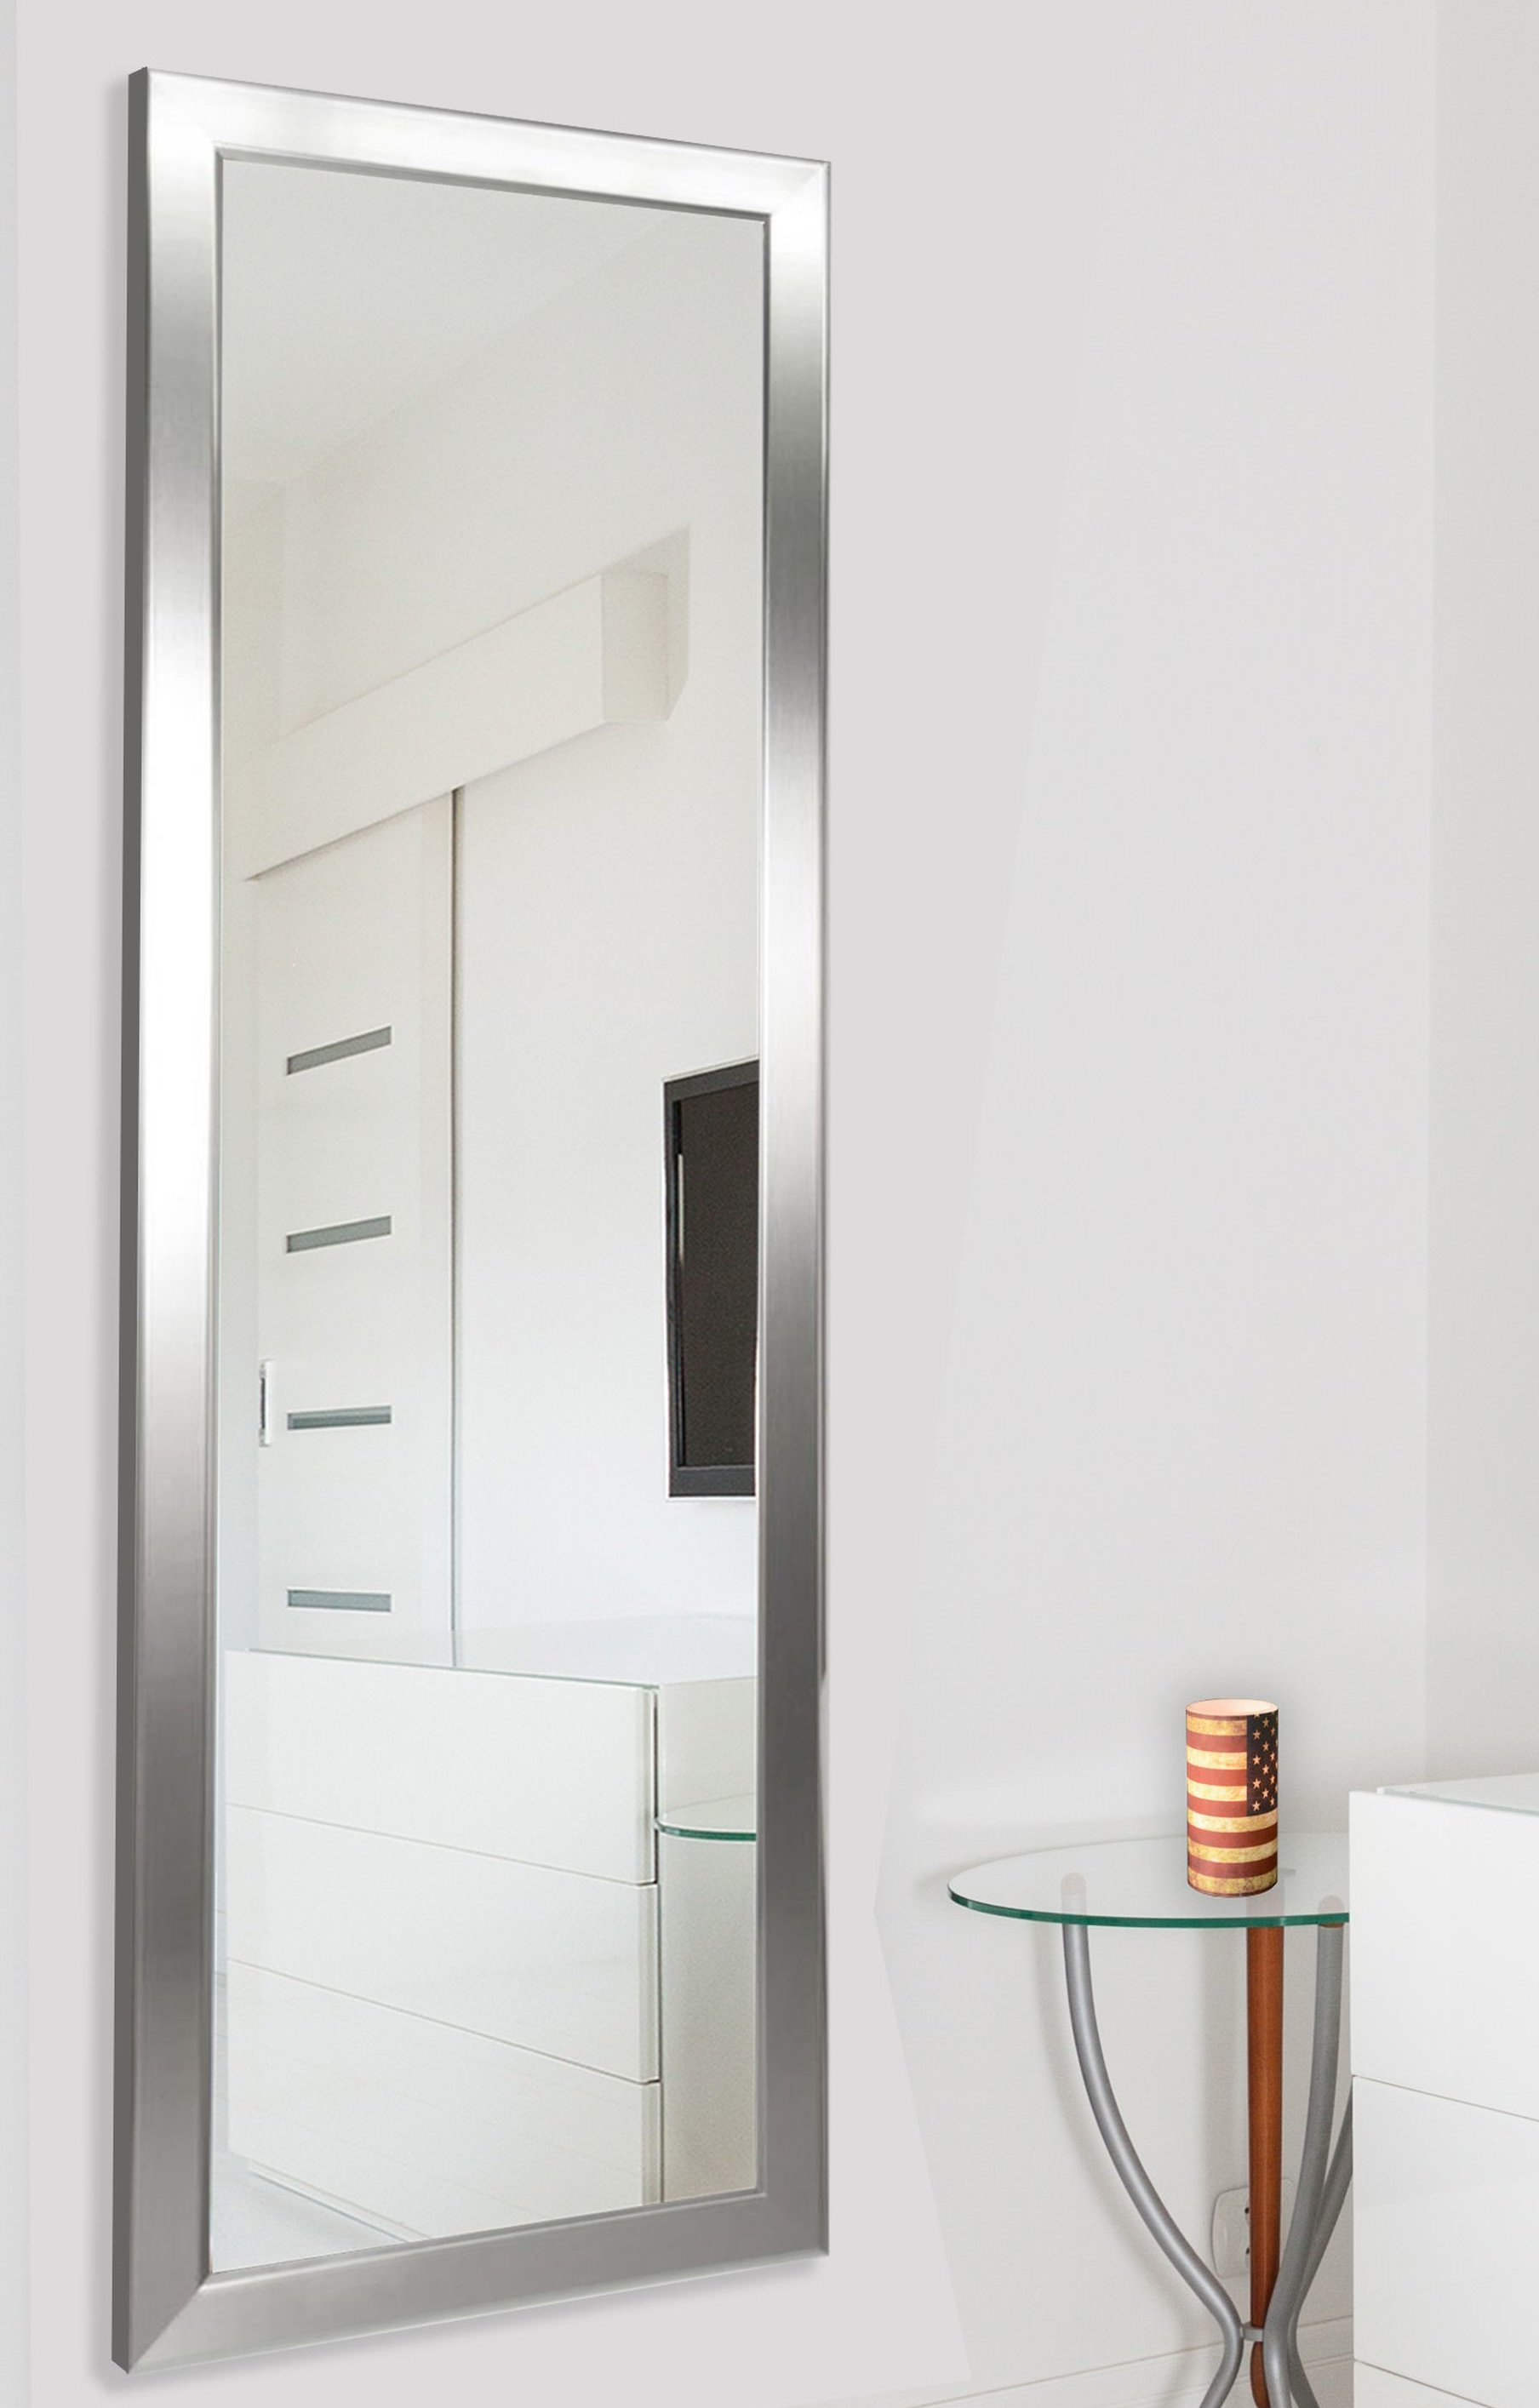 Favorite Edge Minimal Modern & Contemporary Full Length Body Mirror Intended For Full Body Wall Mirrors (View 6 of 20)